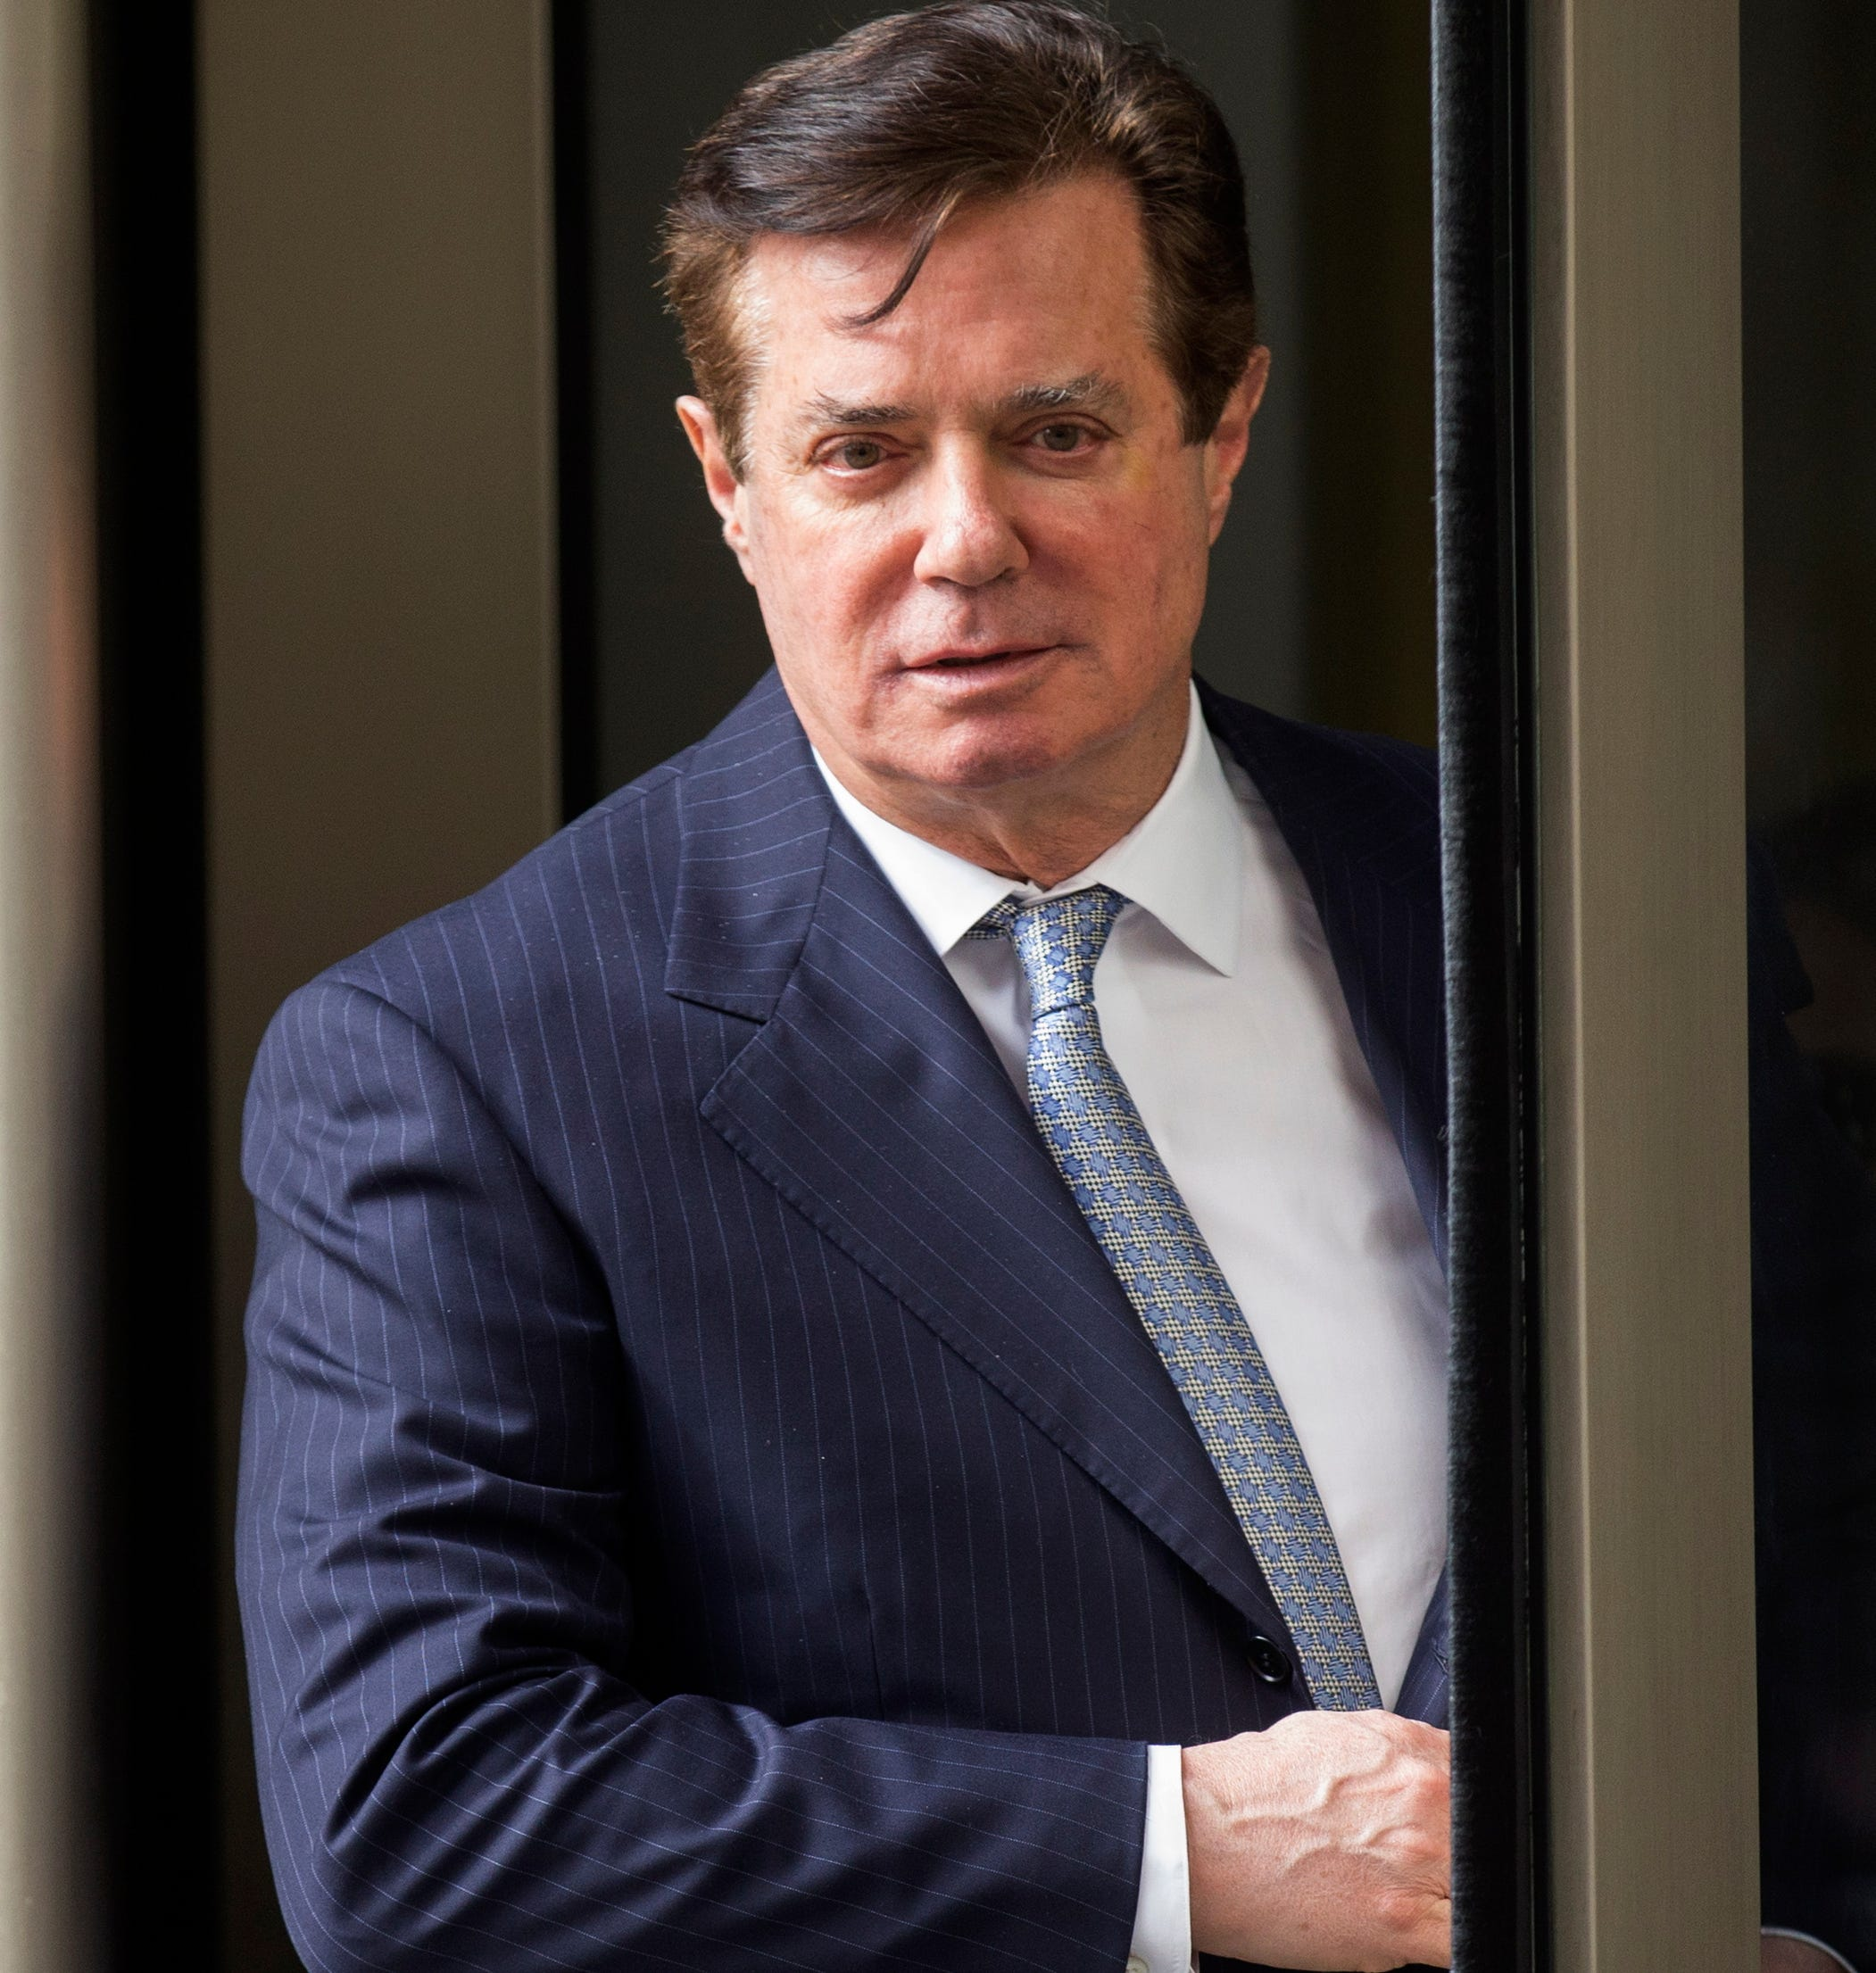 Former Trump campaign chairman Paul Manafort departs the federal court house after a status hearing in Washington, DC, earlier this year.